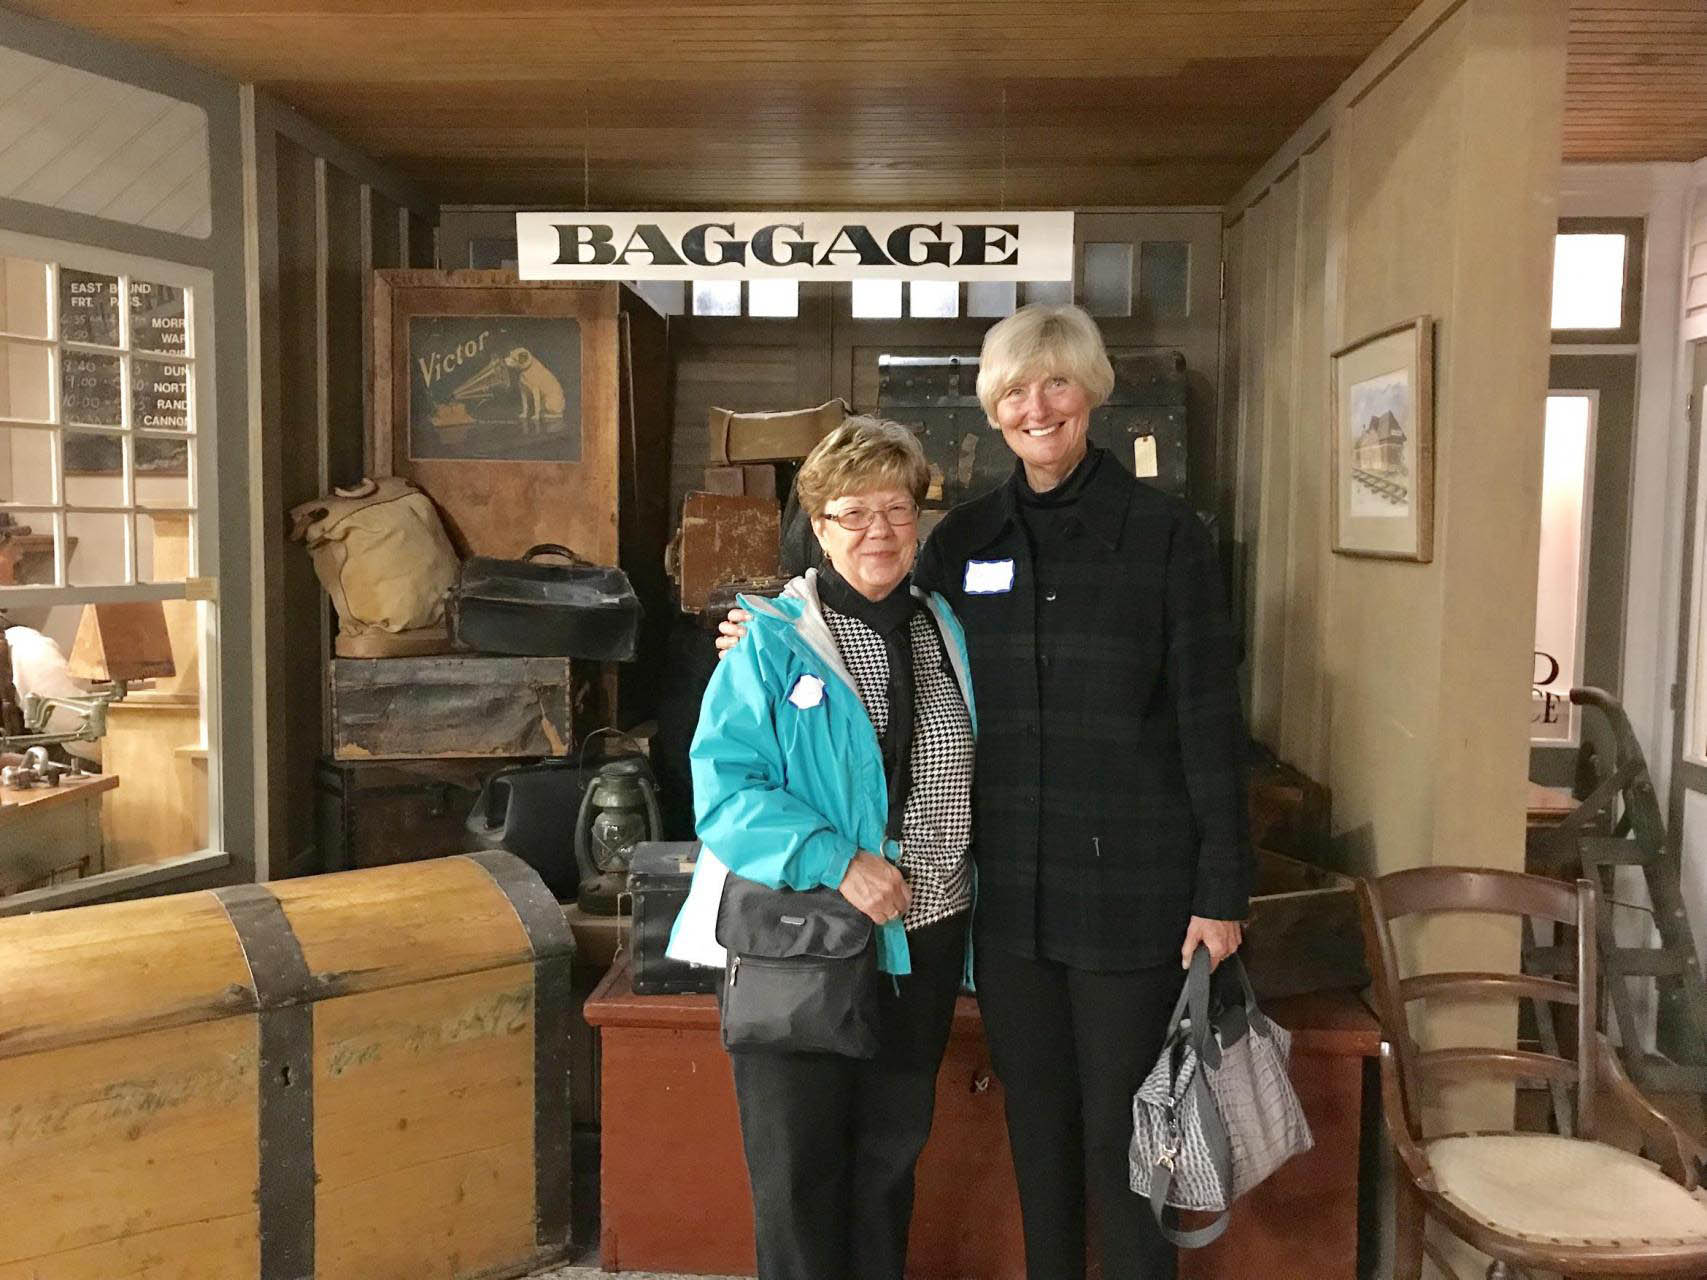 Two women at a historic train station.